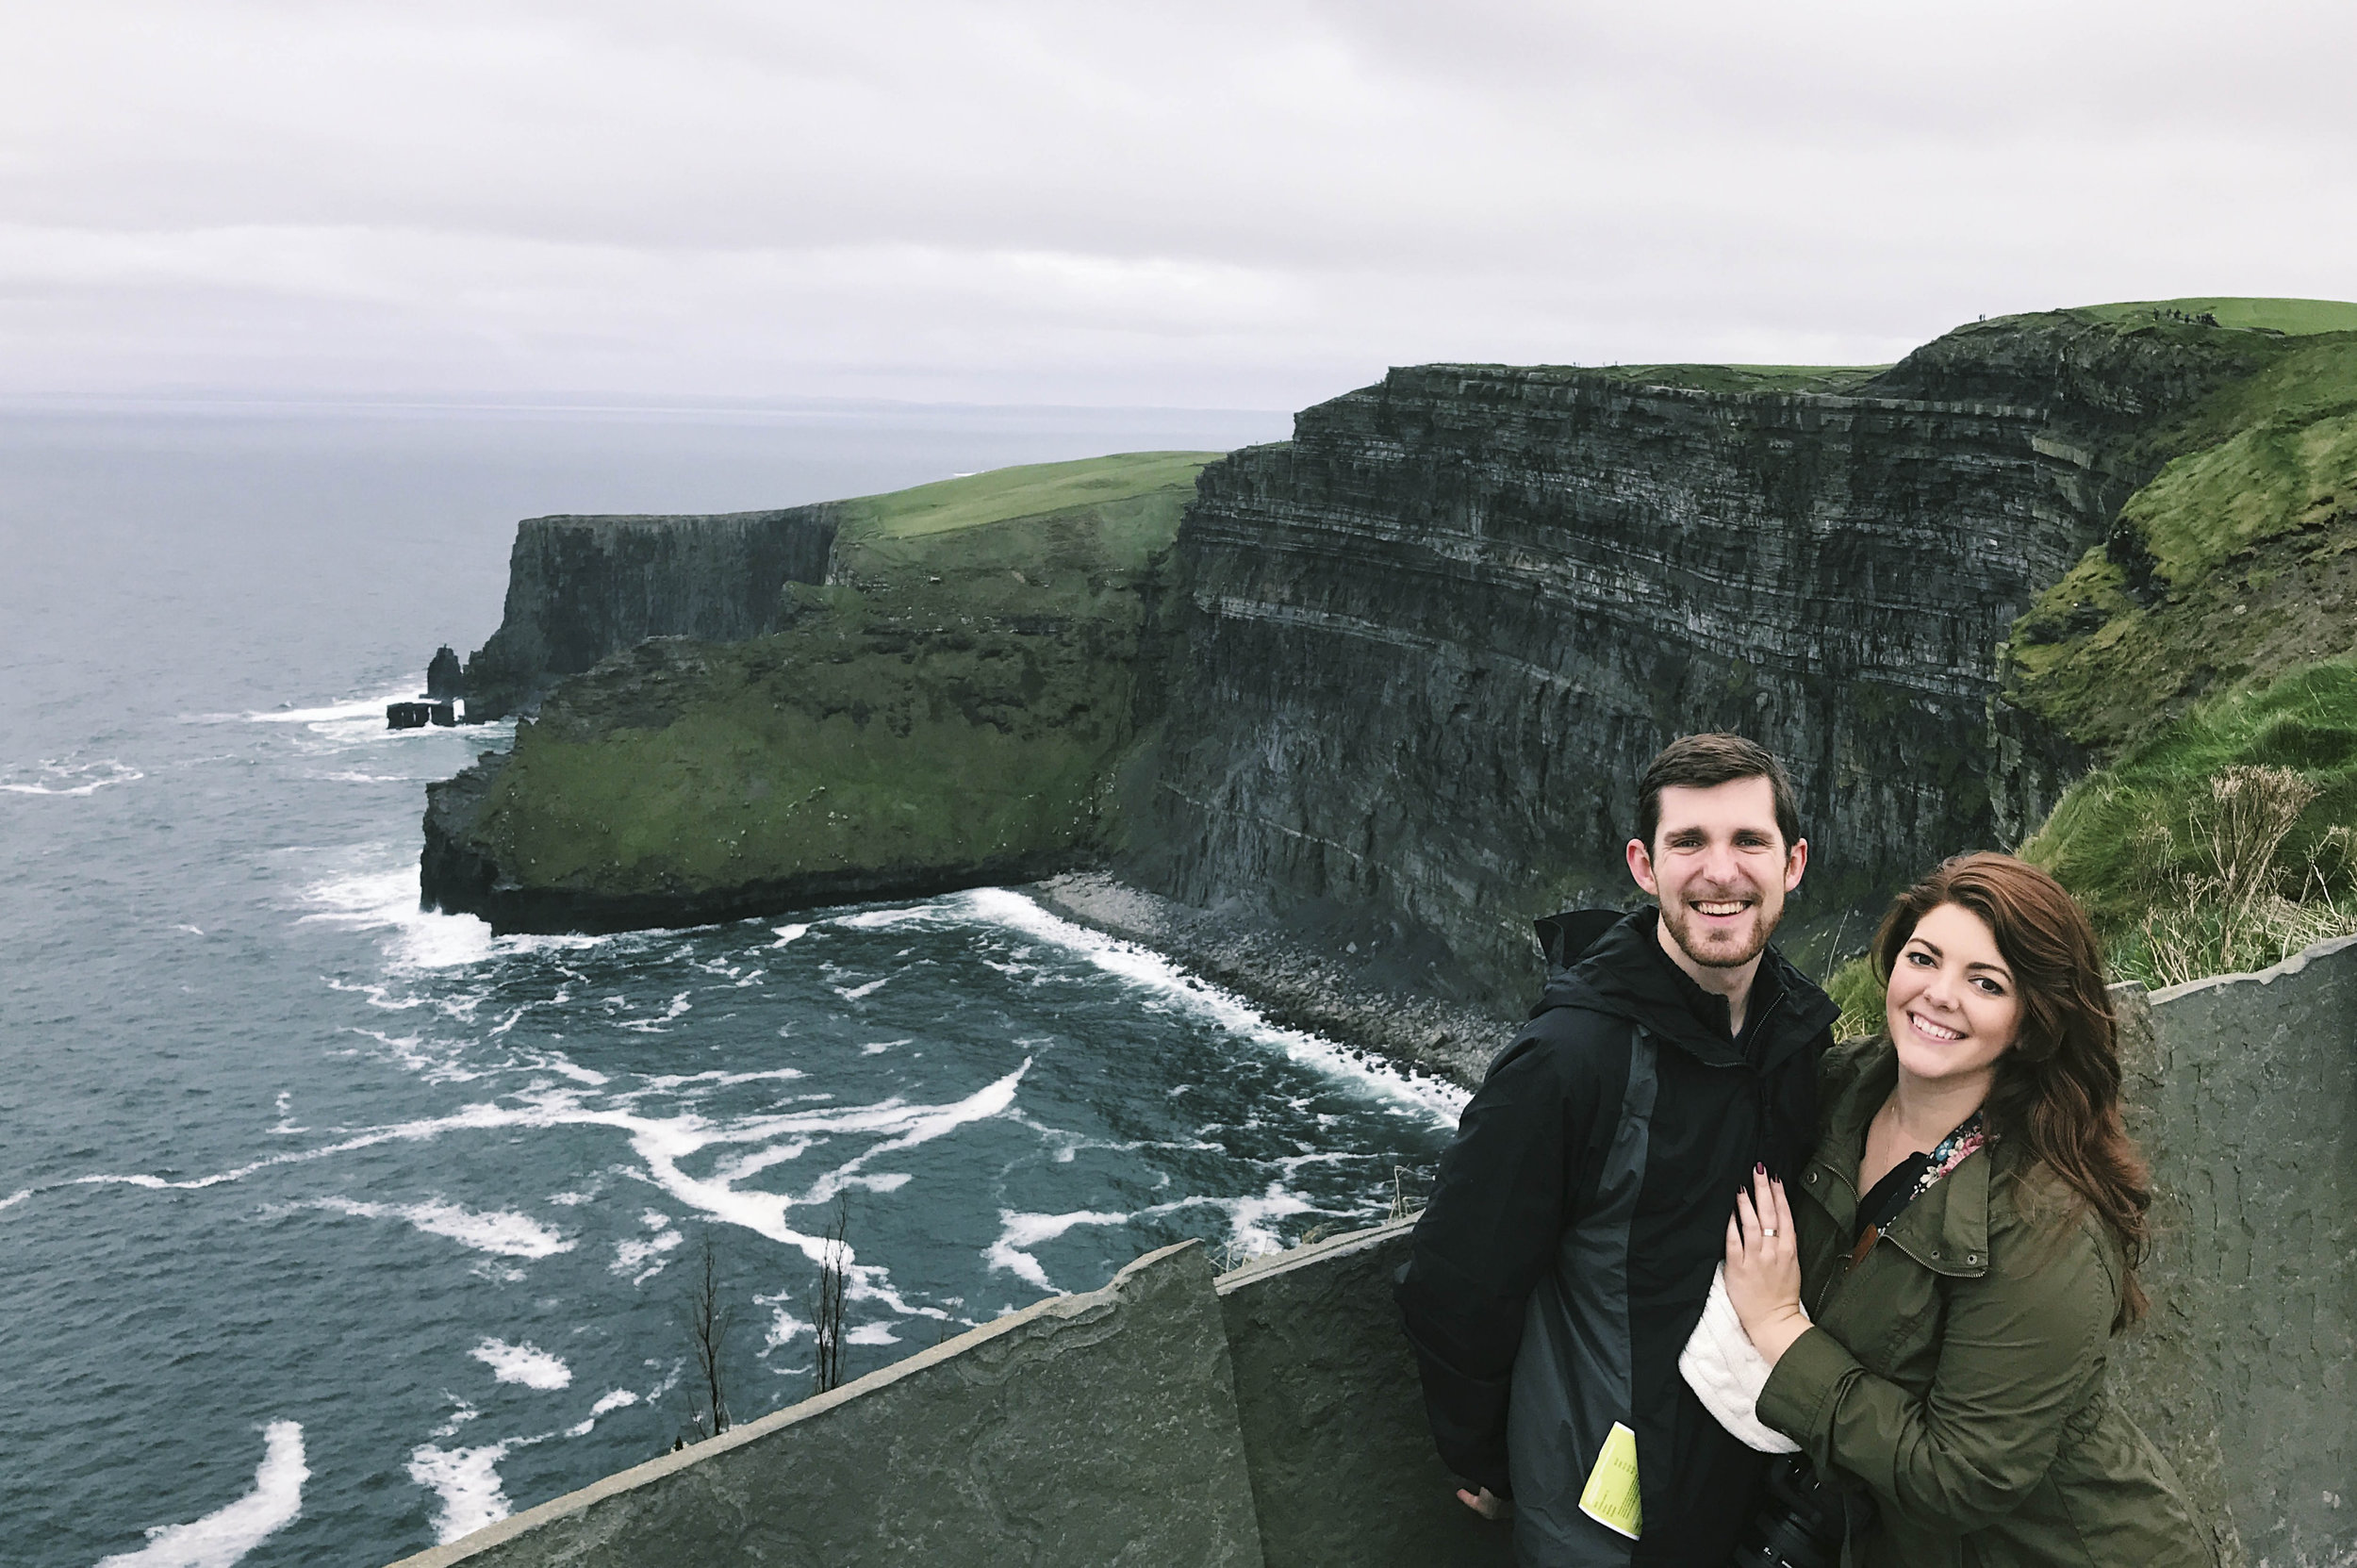 Cliffs_moher_ireland_travel_scenic_photography